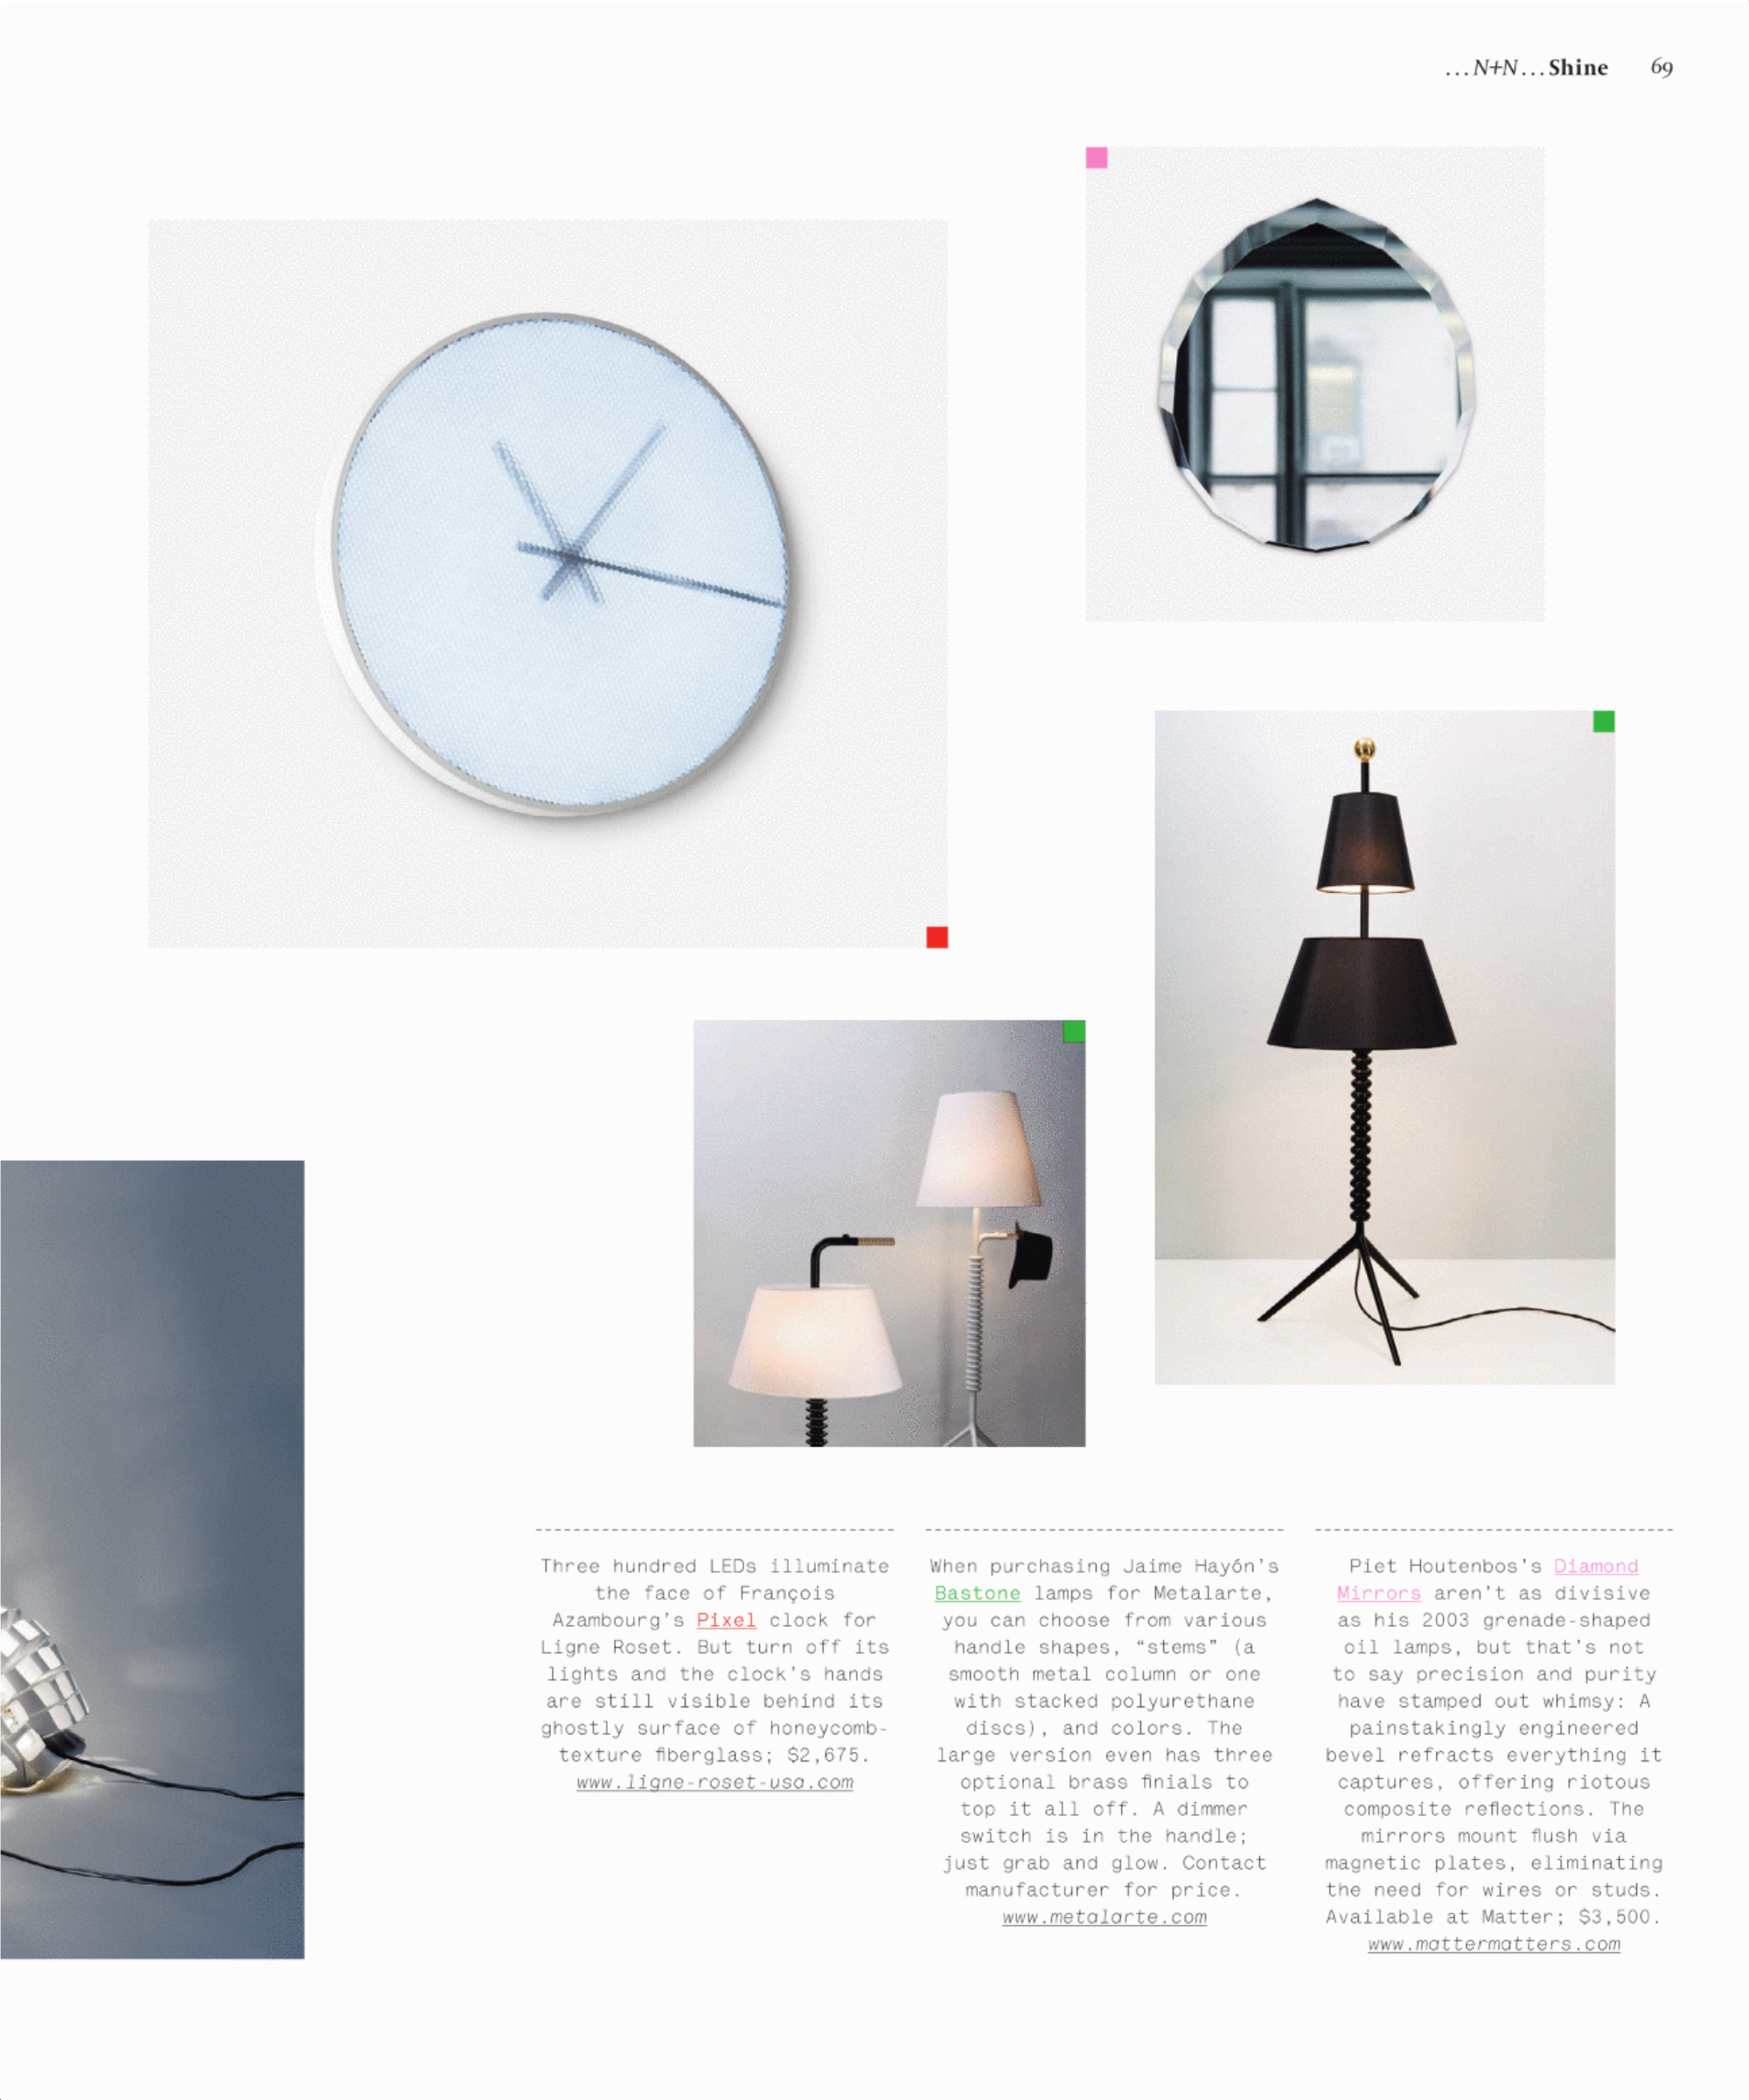 The Diamond Mirror features as one of ID Magazines favorite products of the year.